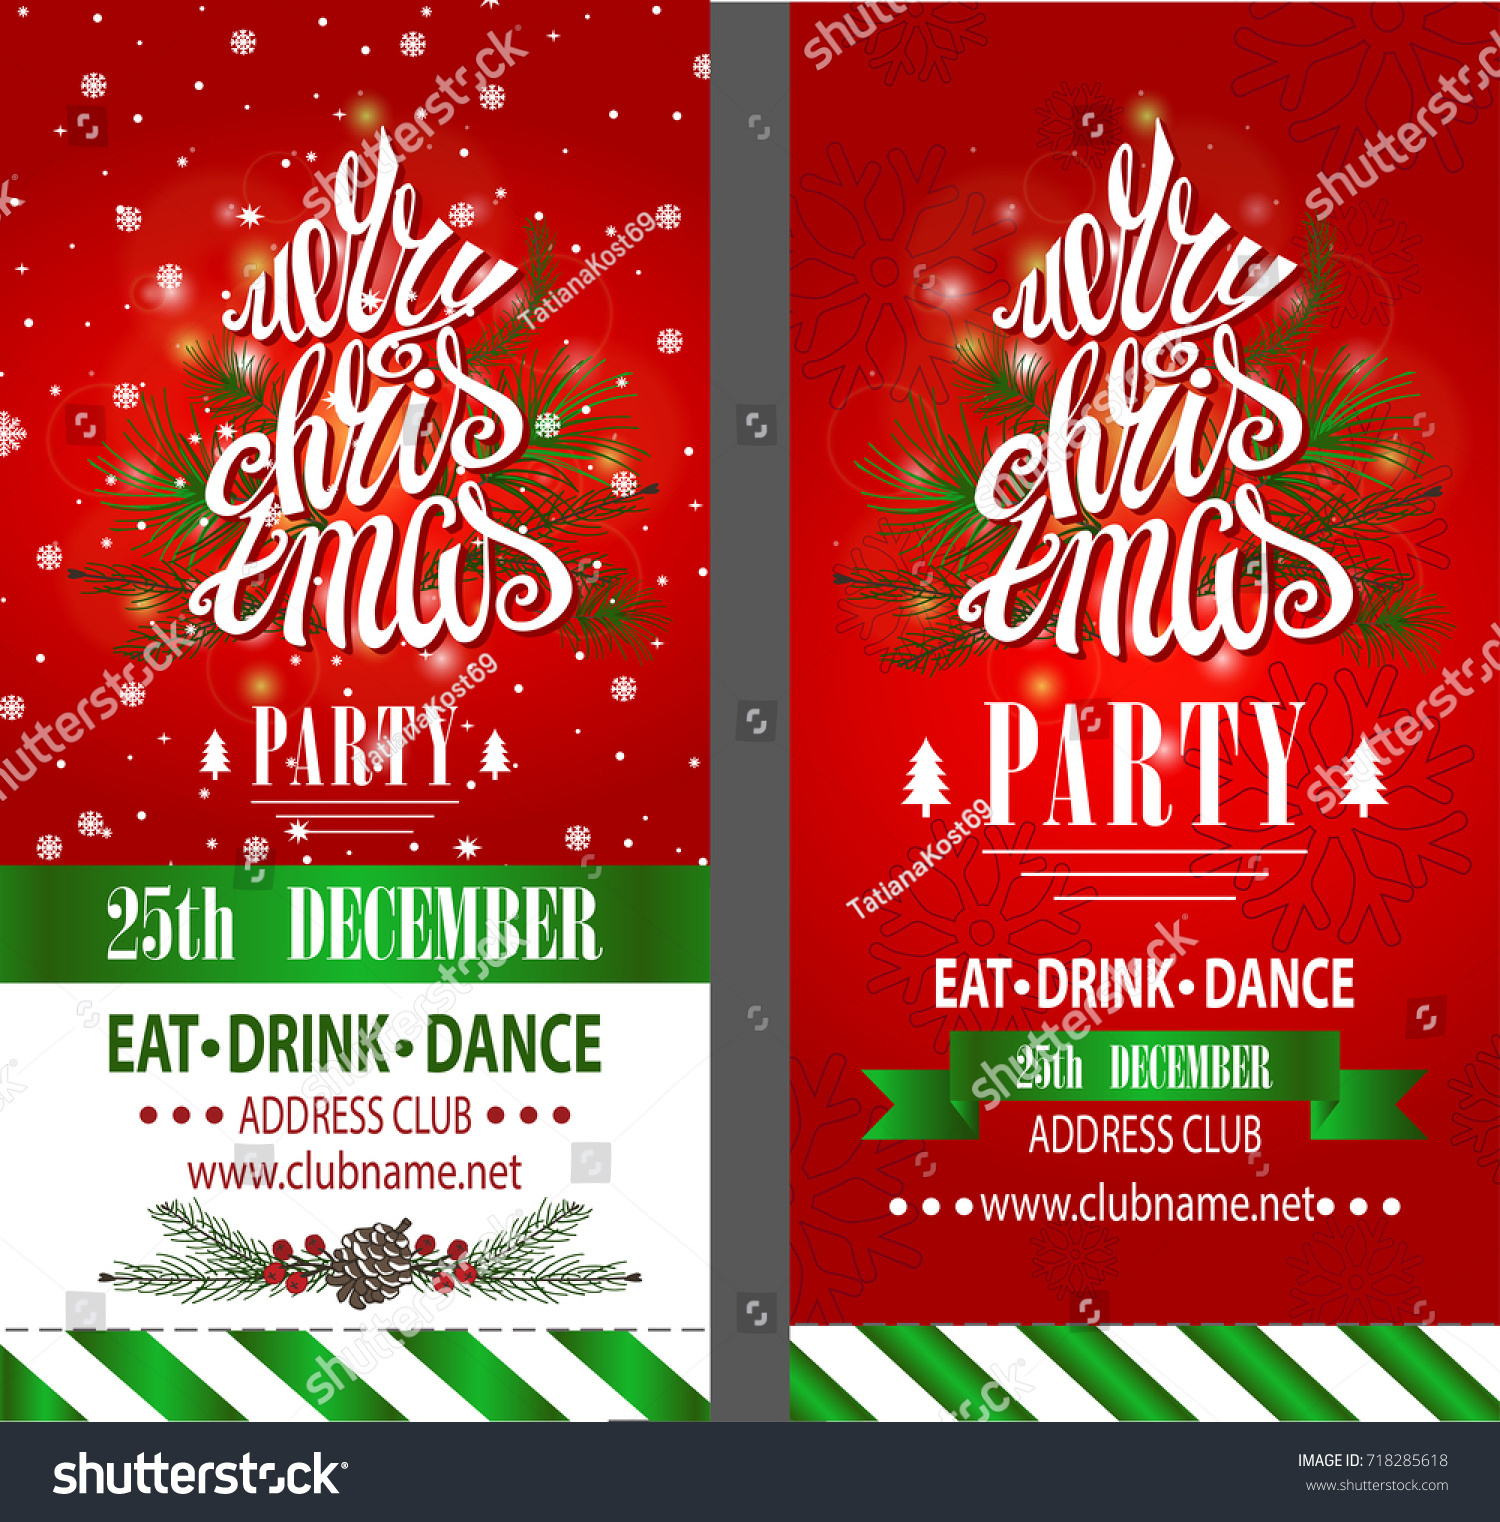 Merry Christmas Party Invitationdesign Templateflyerticket ...